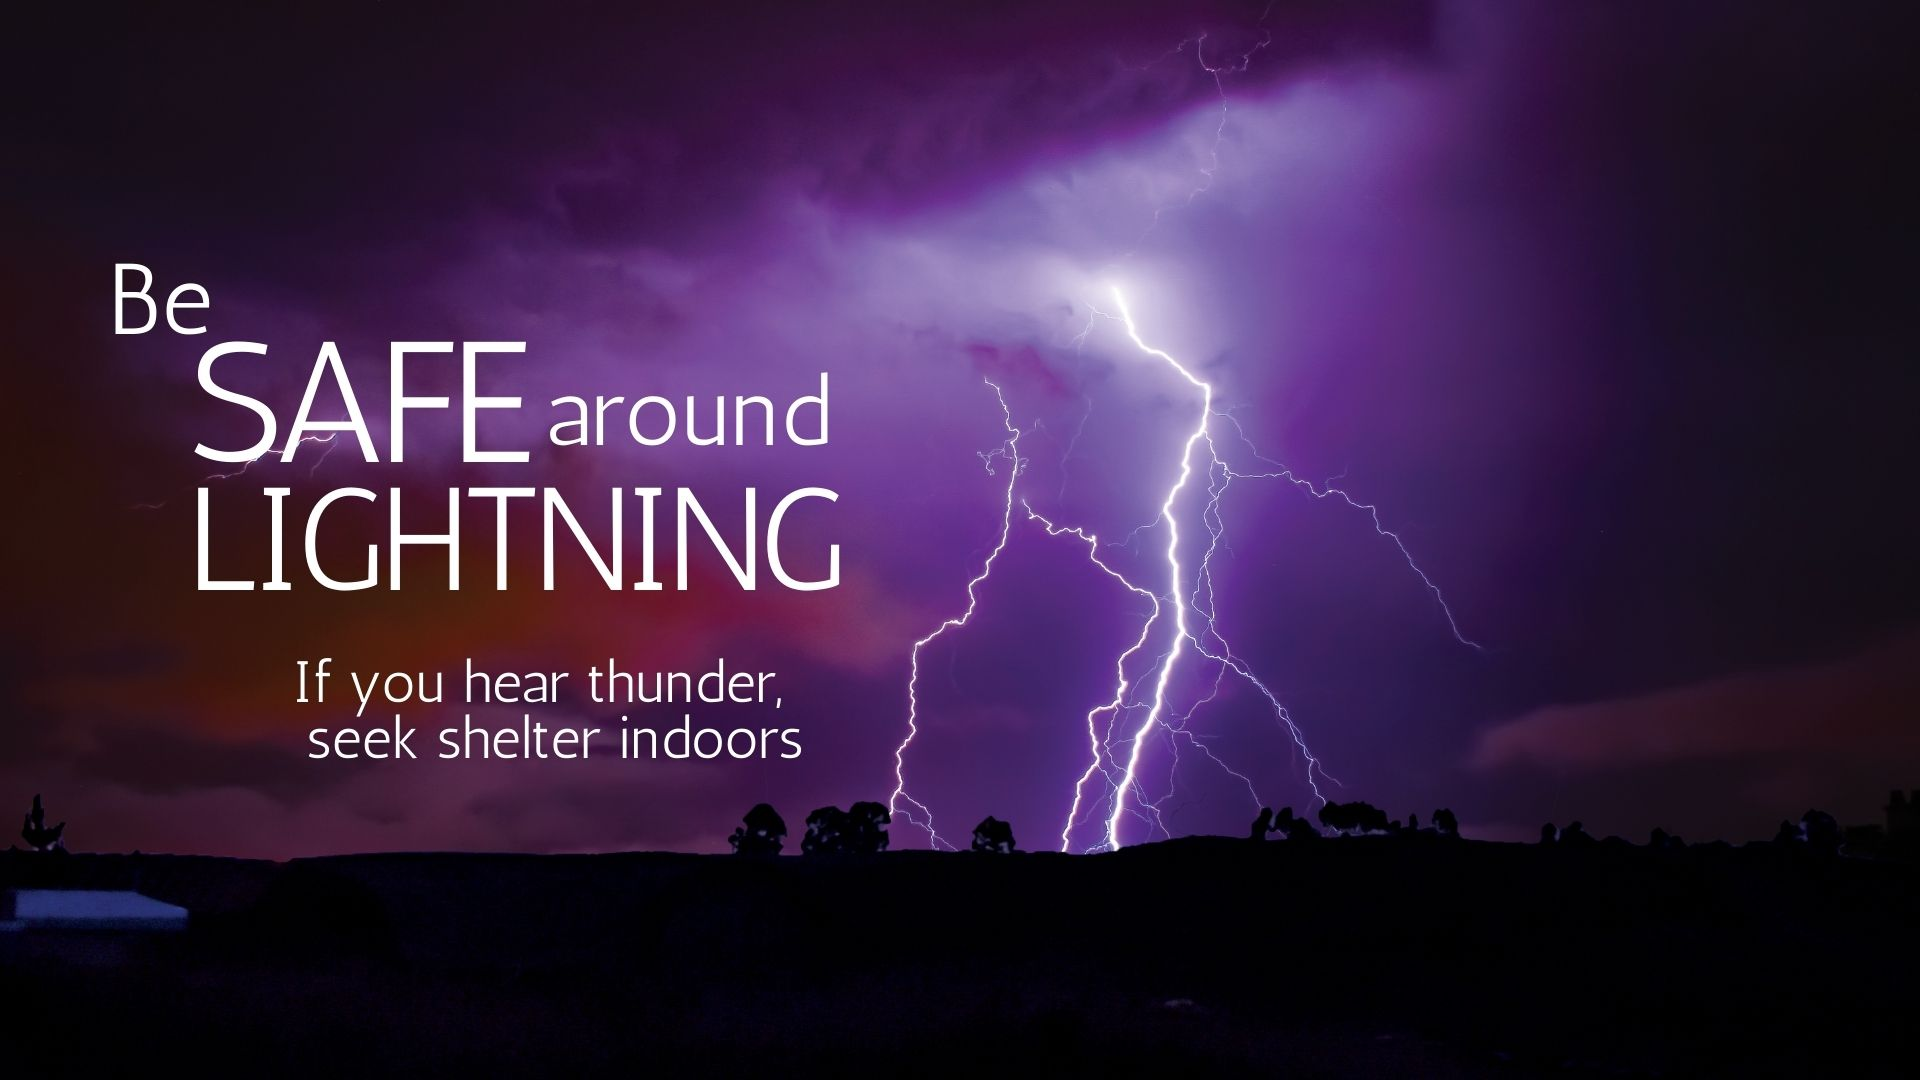 https://pioneerec.com/sites/pioneerec/files/revslider/image/BS%20Safe%20Around%20Lightning%20%284%29.jpg